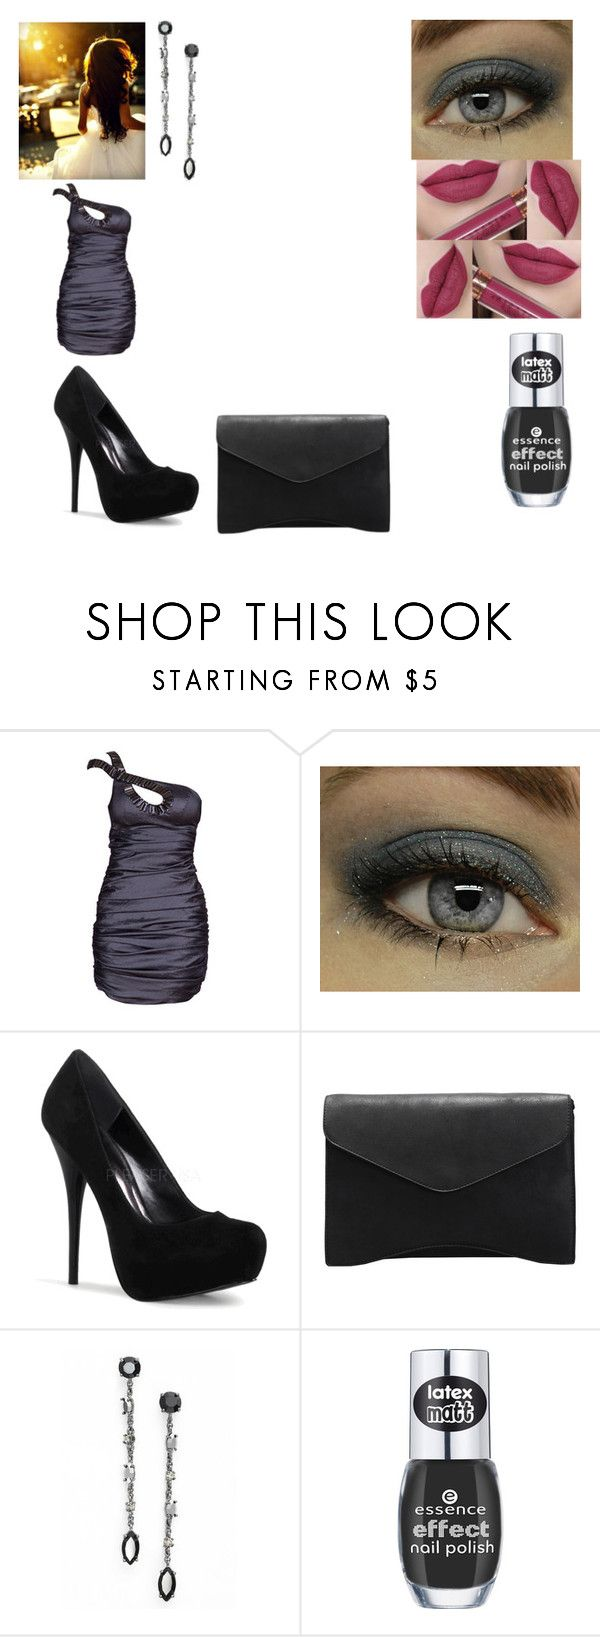 """""""Senza titolo #509"""" by cavallaro ❤ liked on Polyvore featuring ASOS, Marchesa, women's clothing, women, female, woman, misses and juniors"""